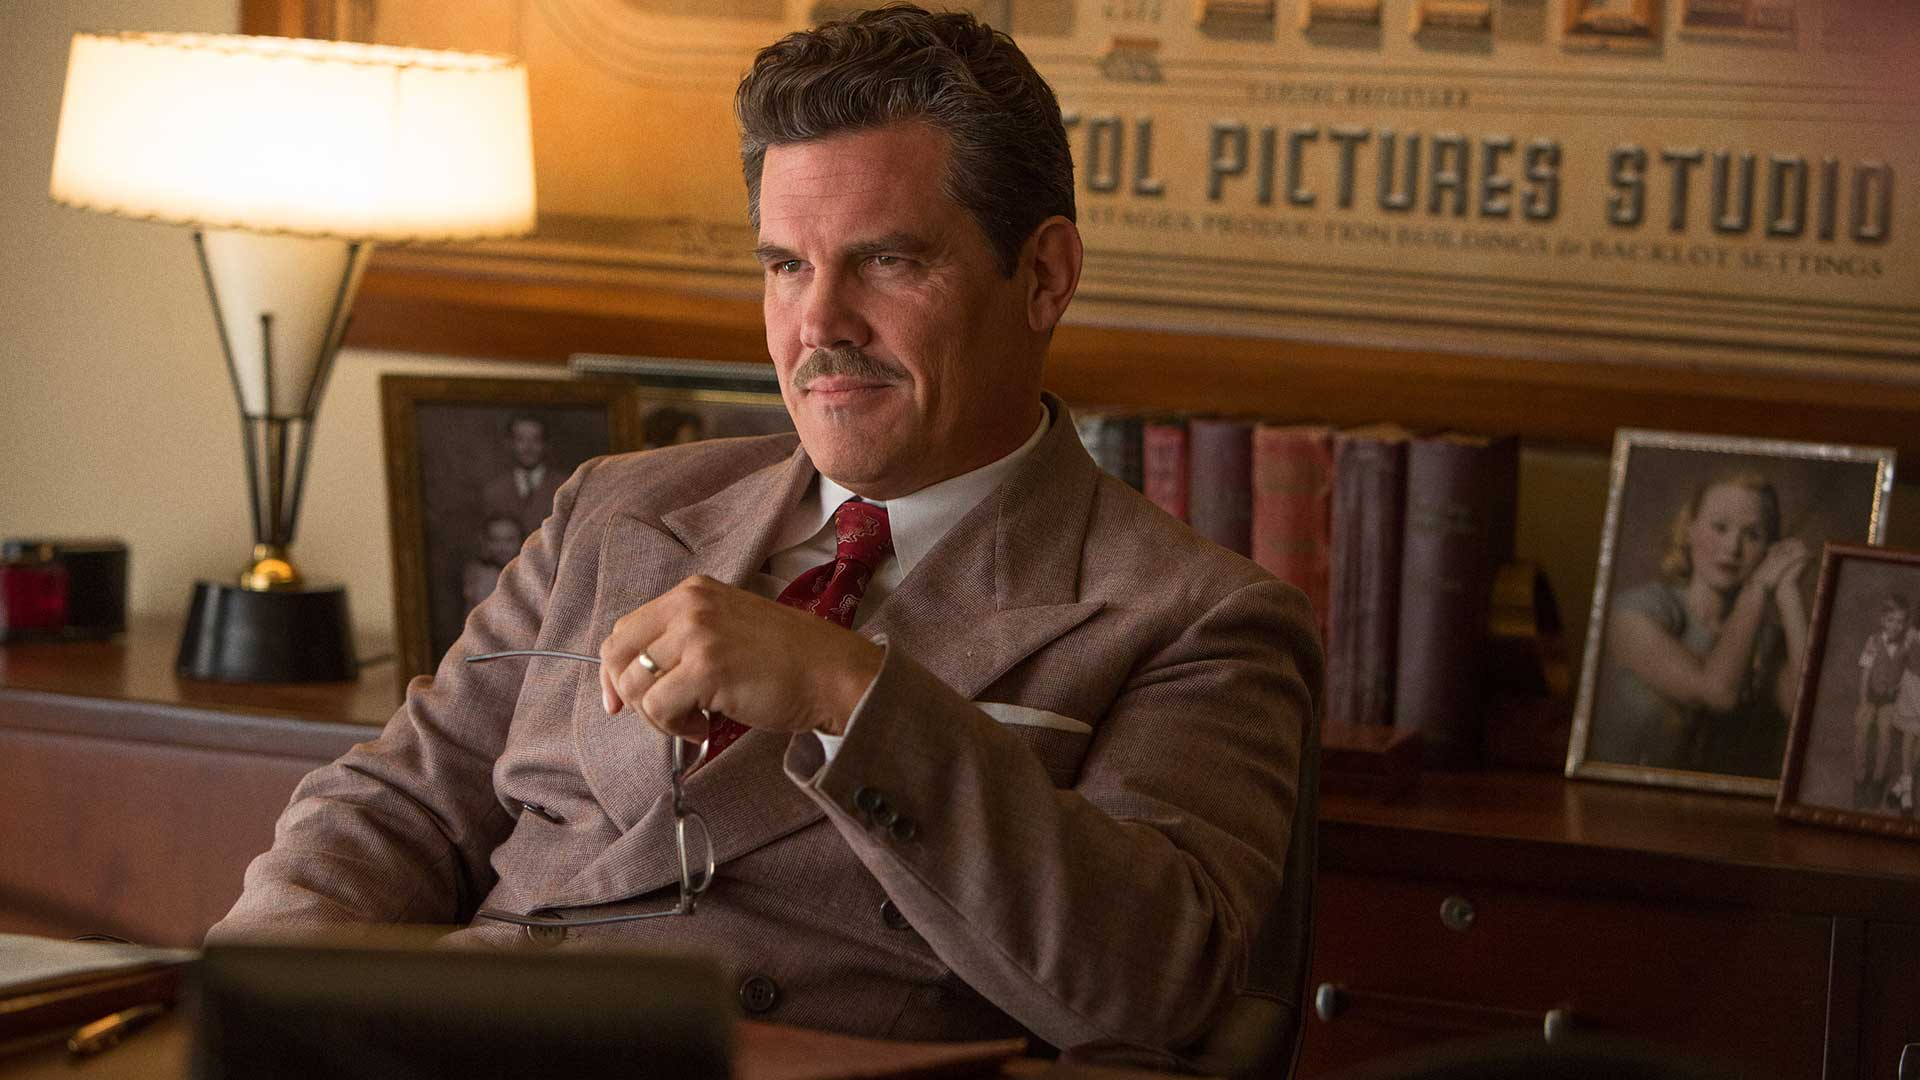 'Hail Caesar' movie review by Lucas Mirabella - LATF USA